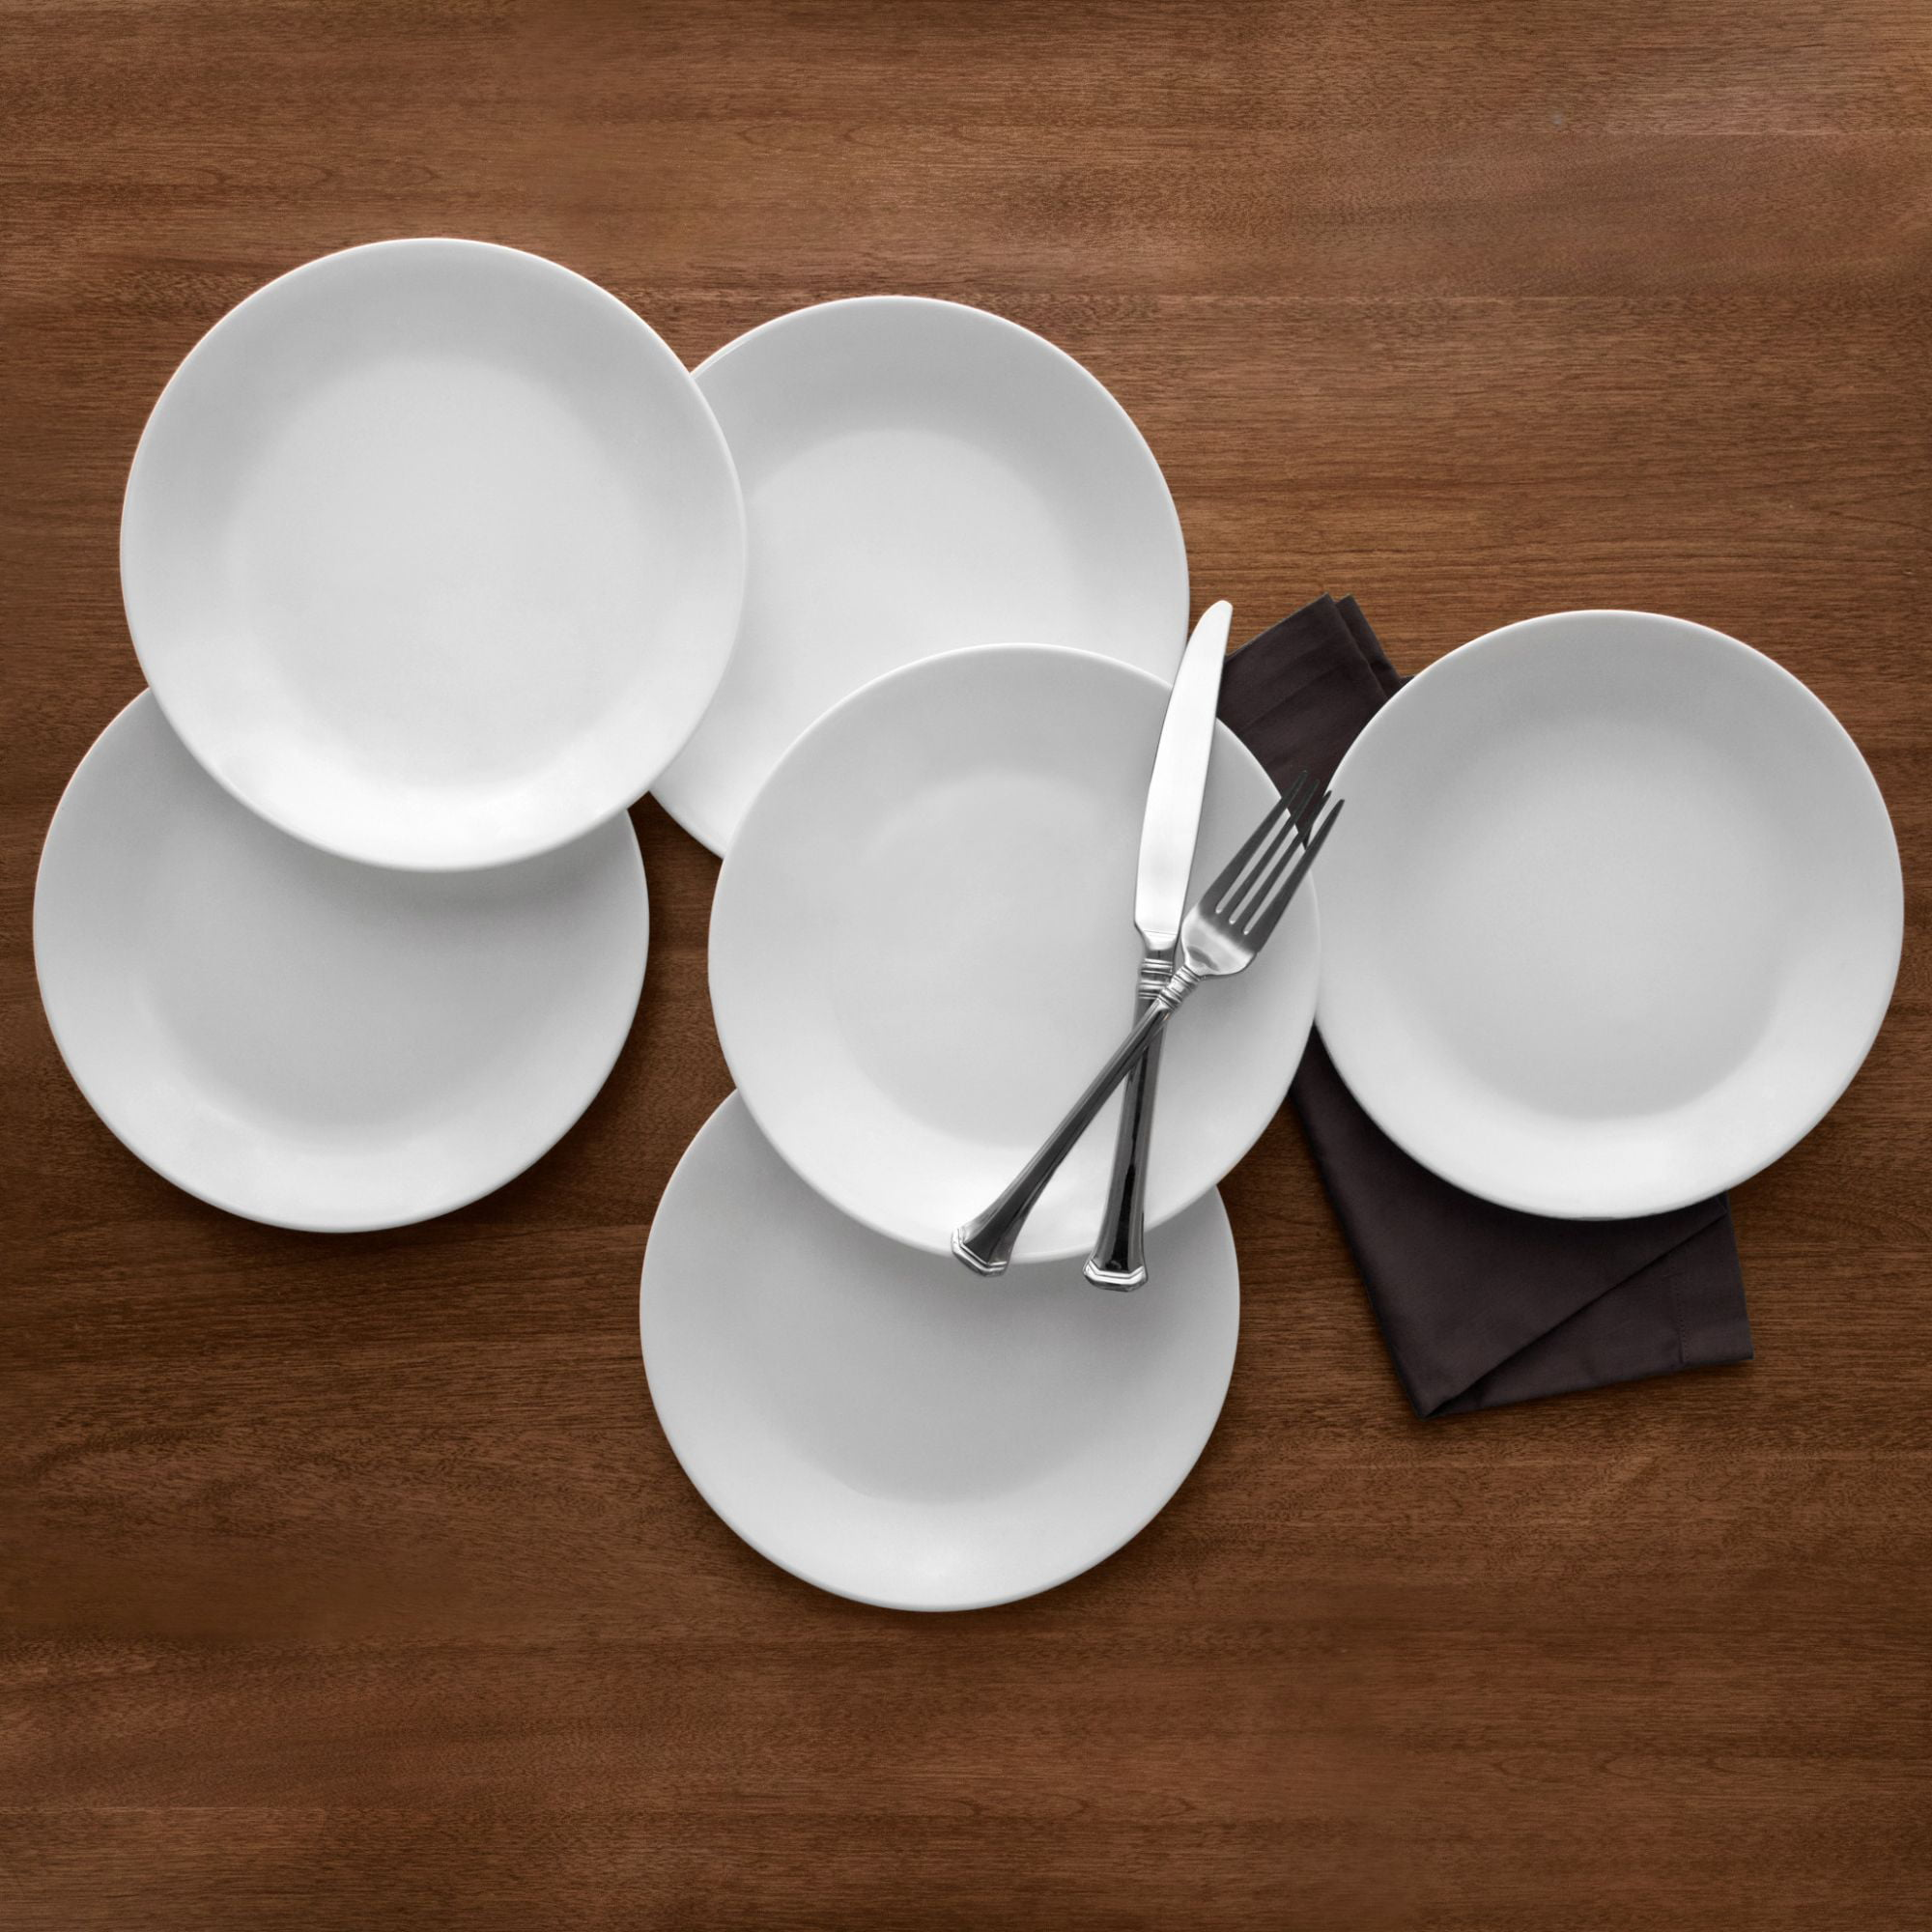 Corelle Classic Winter Frost White 10 25 Dinner Plate Set Of 6 Walmart Com Walmart Com